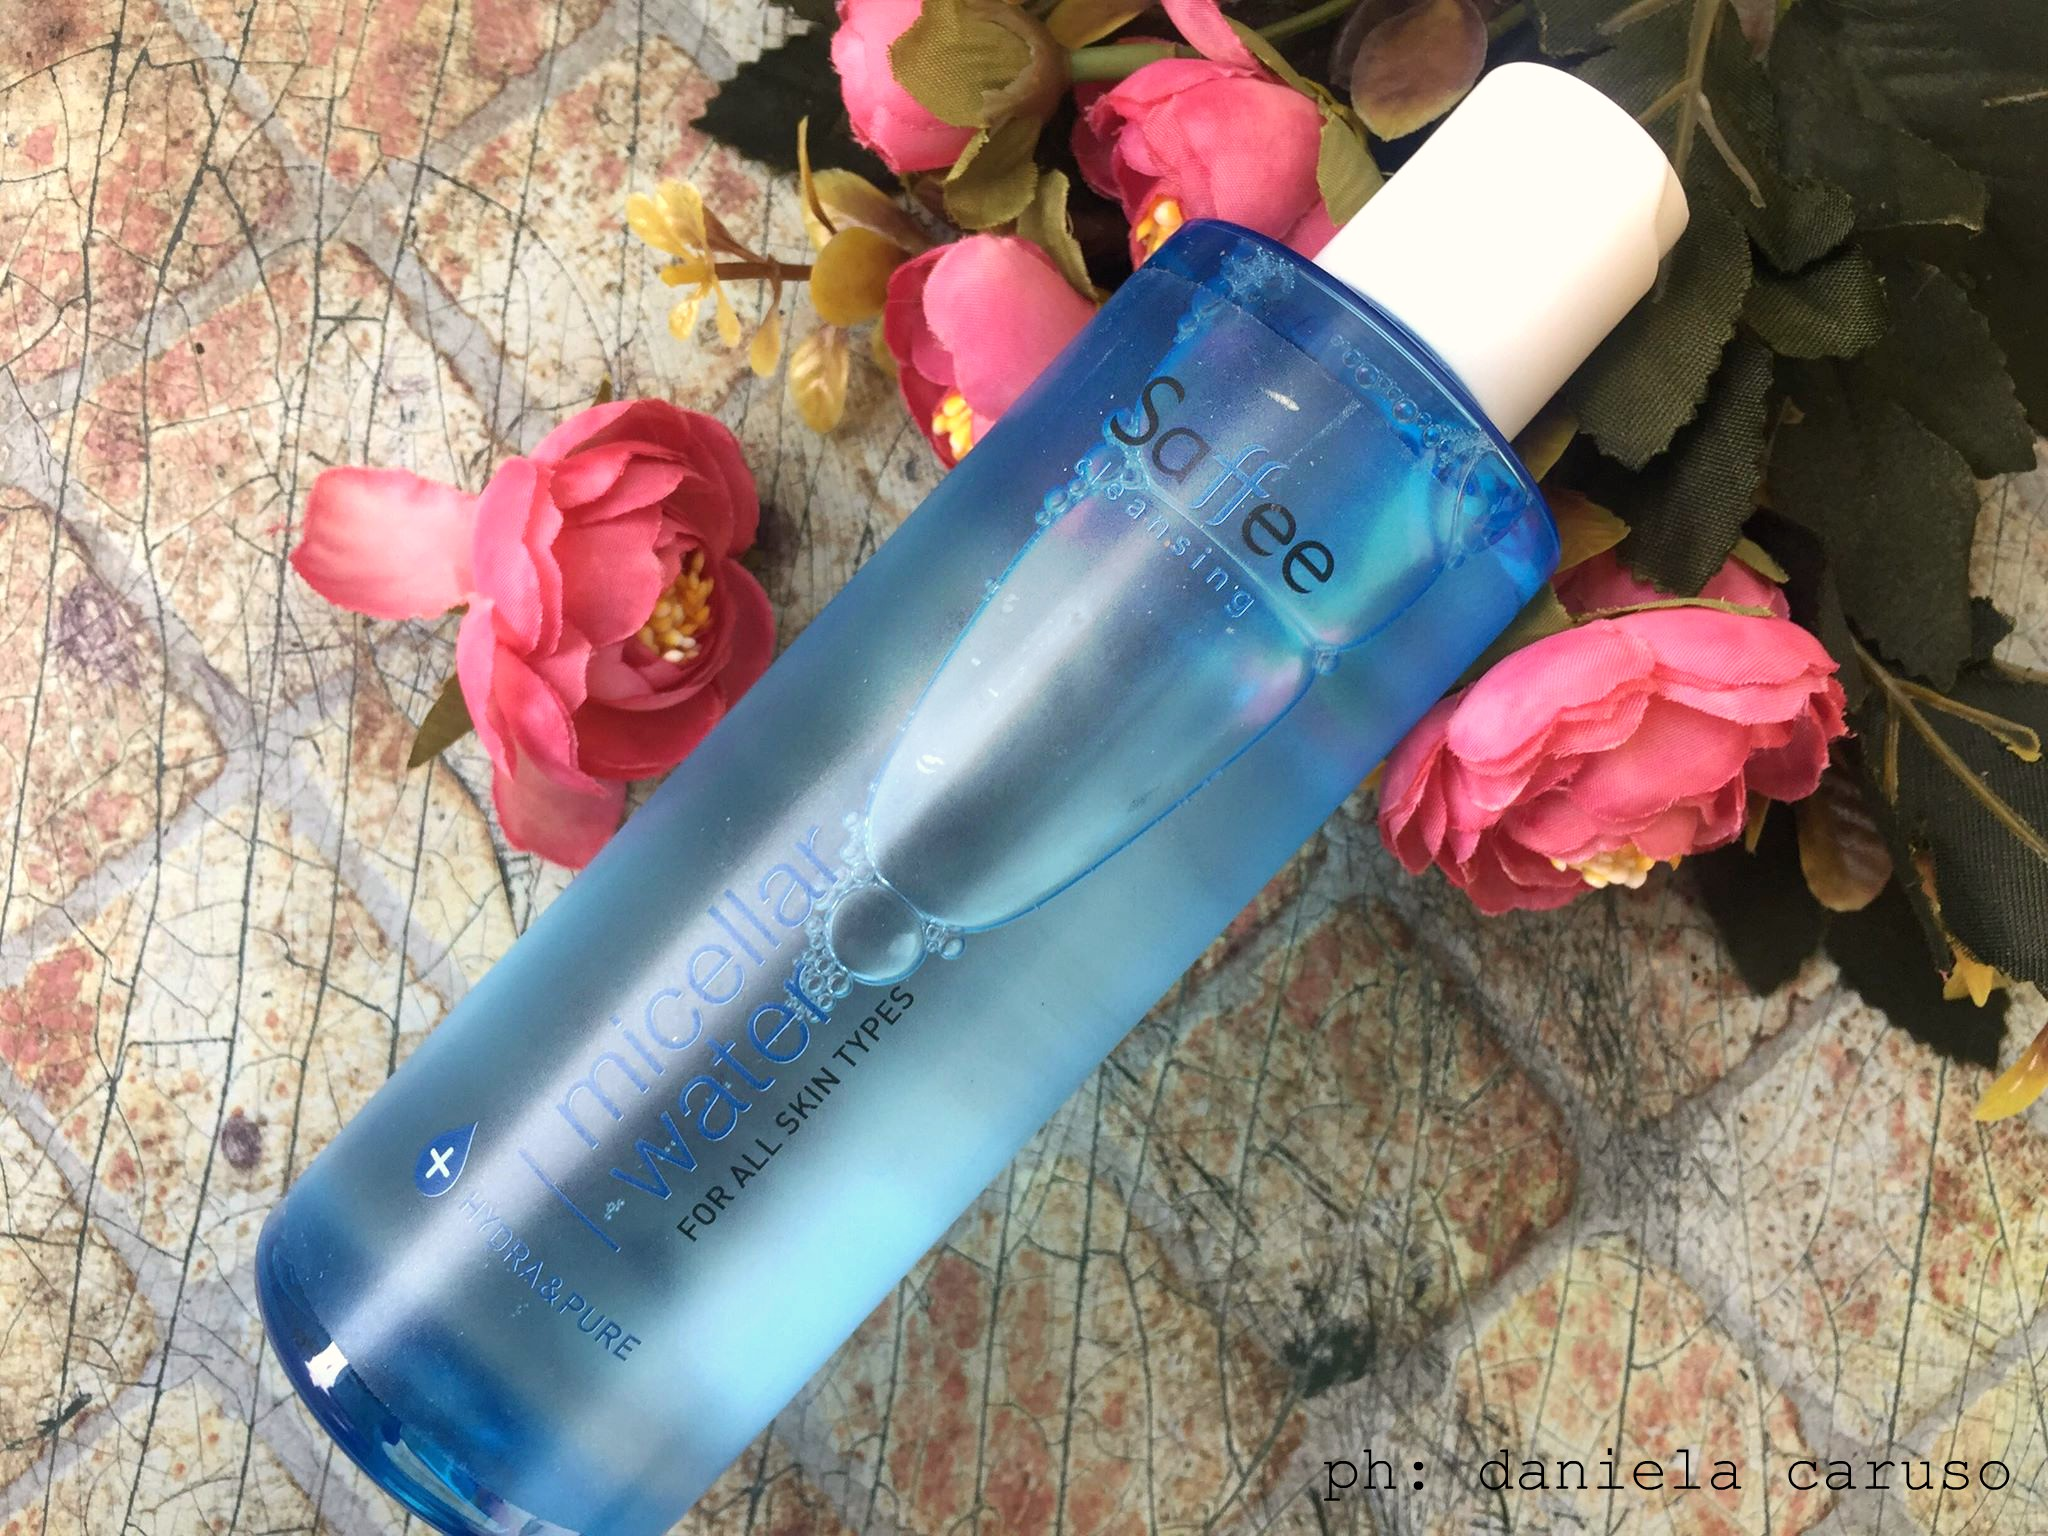 saffee micellar water